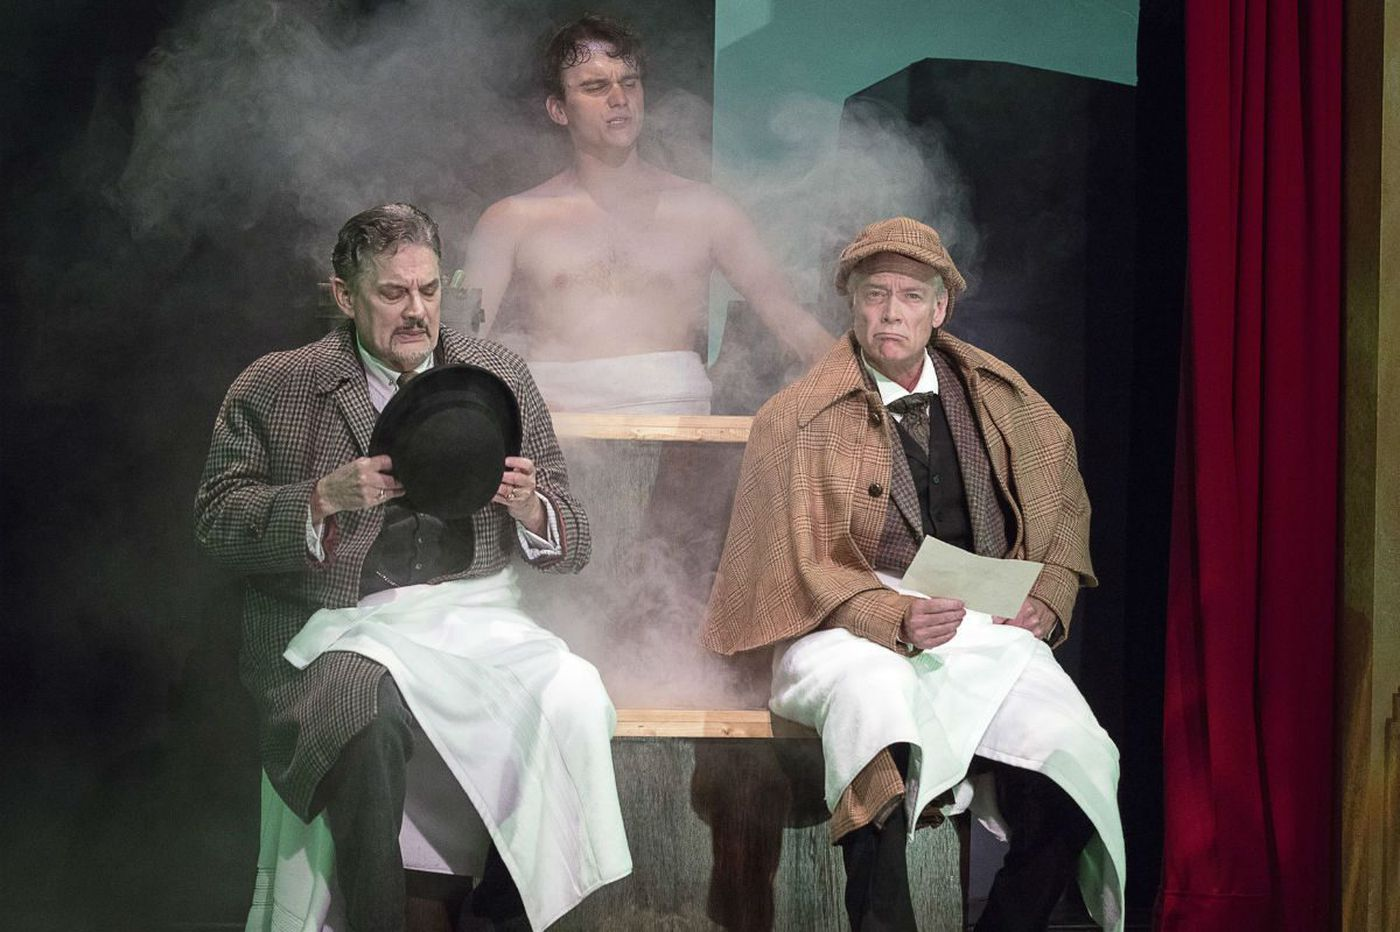 Pa. Shakespeare's 'Baskervilles': Loving send-up of theater itself